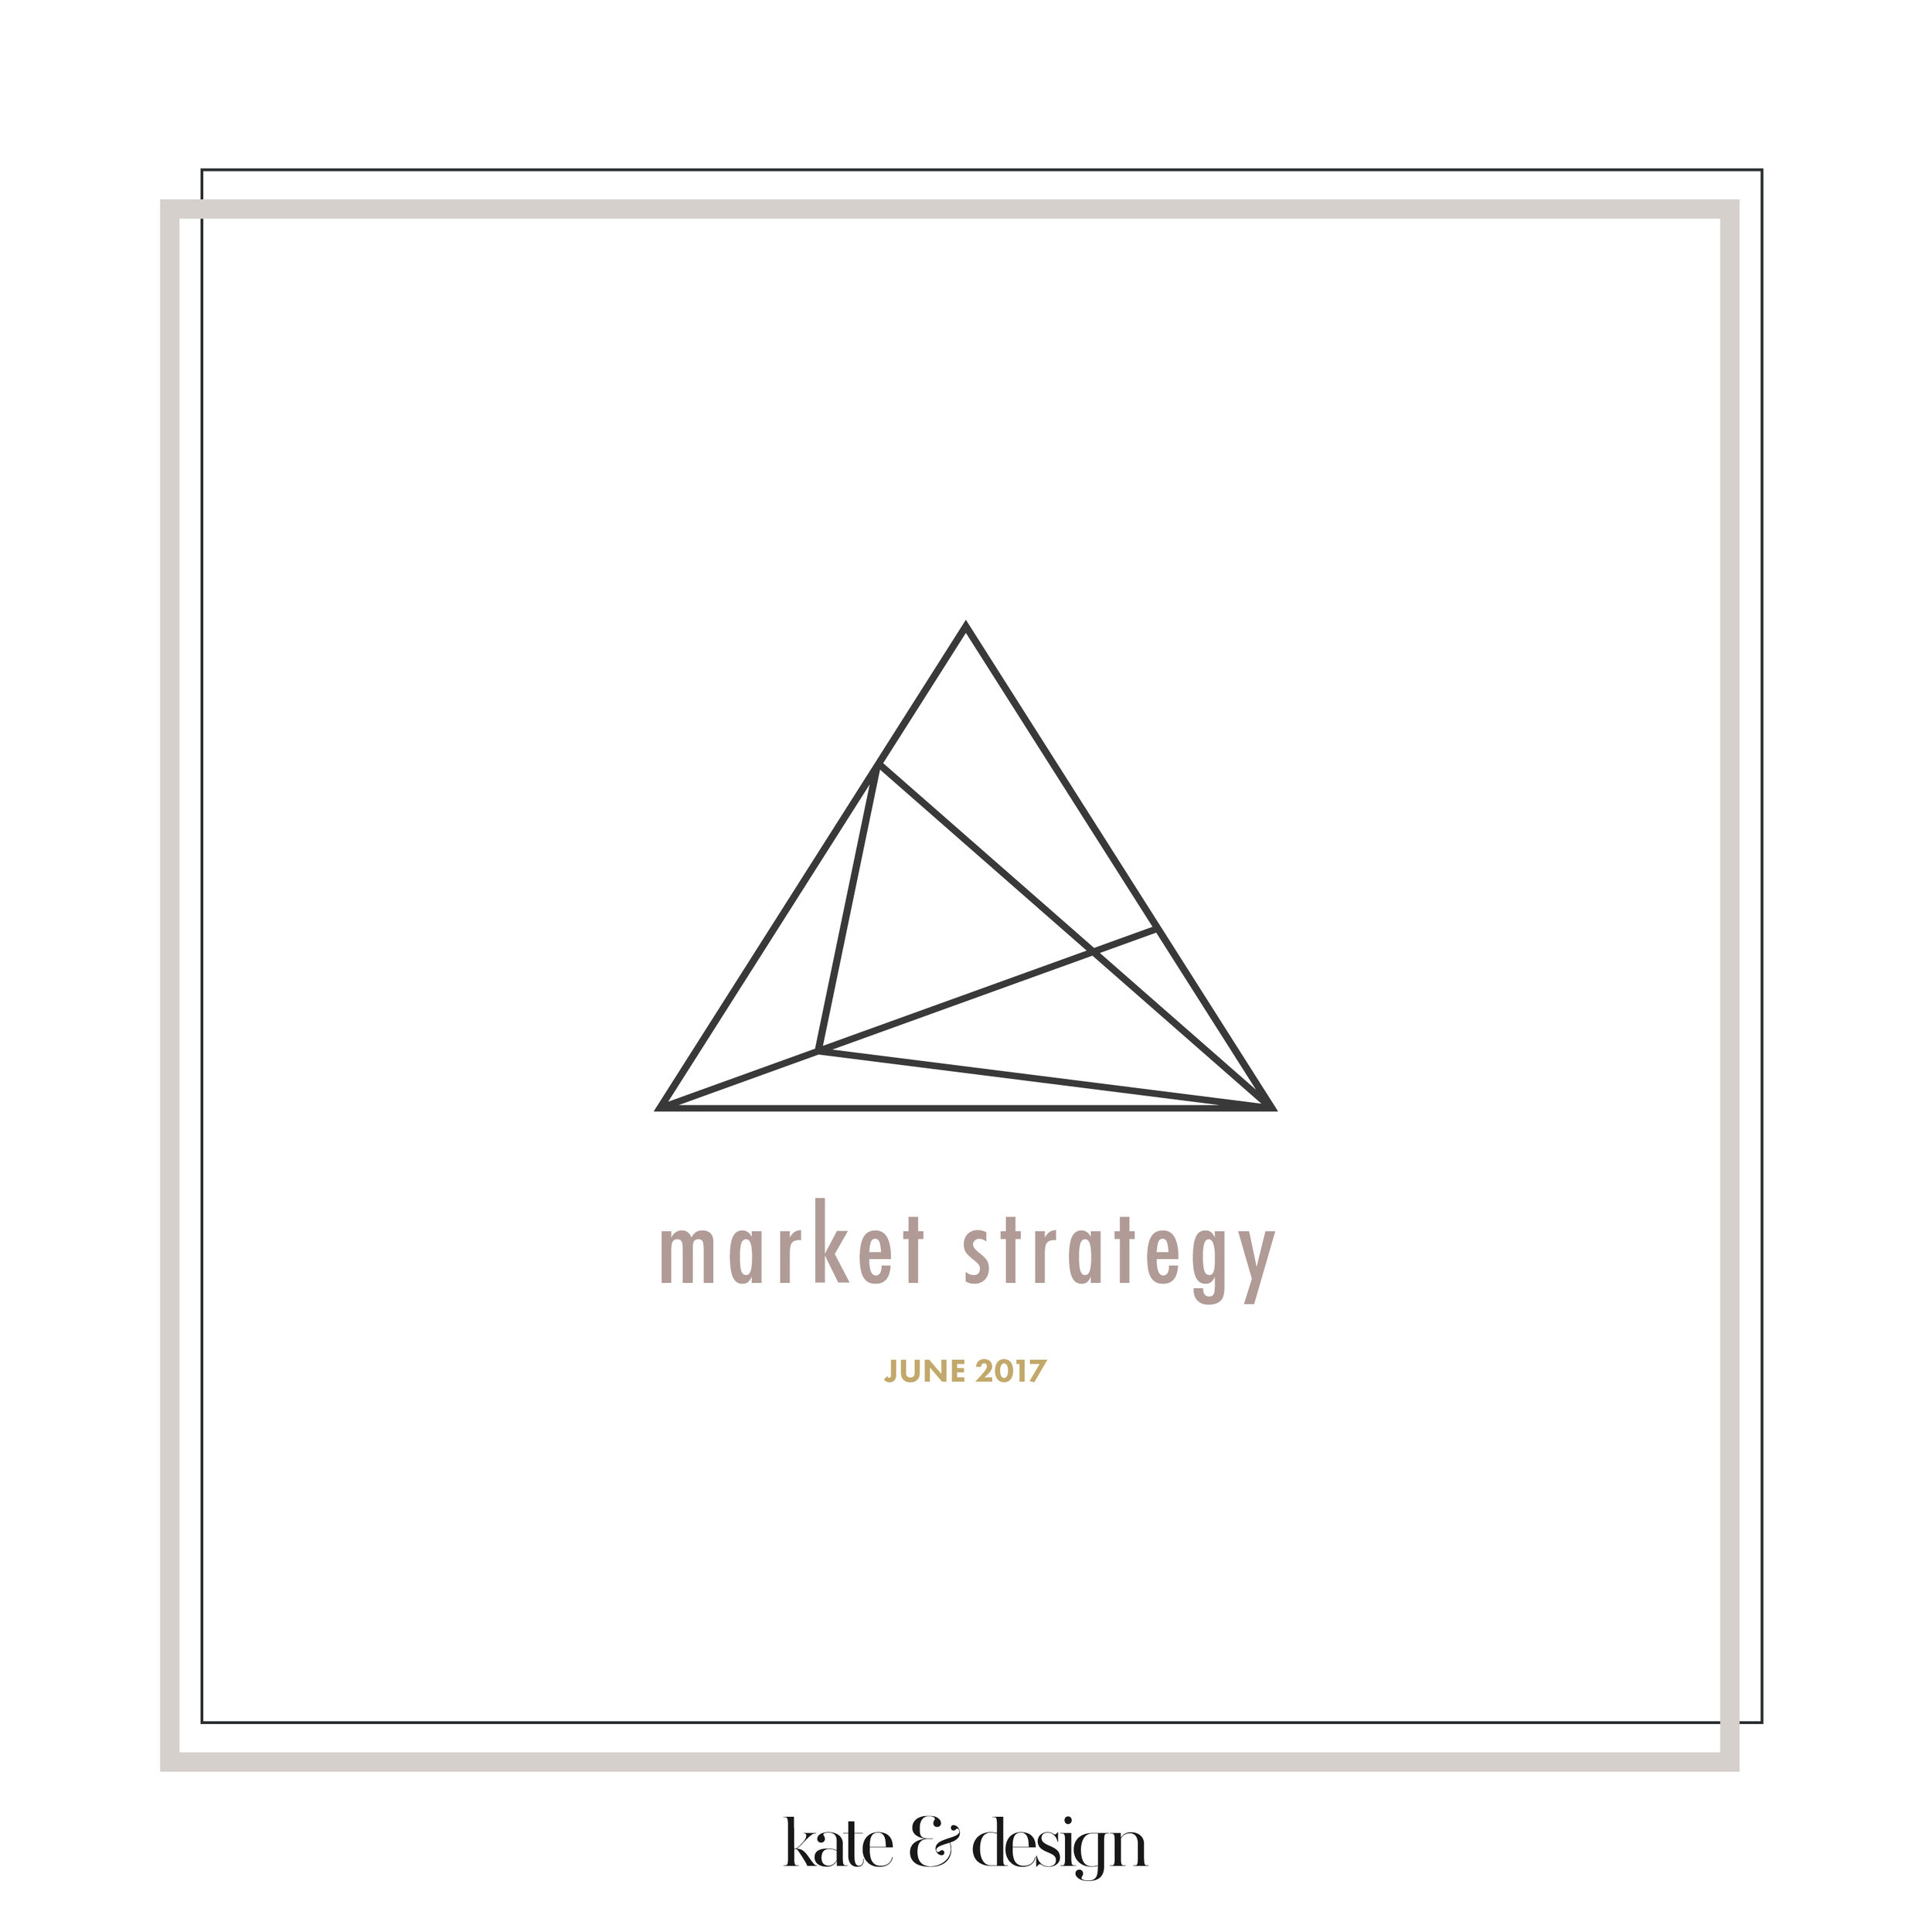 Copy of market strategy